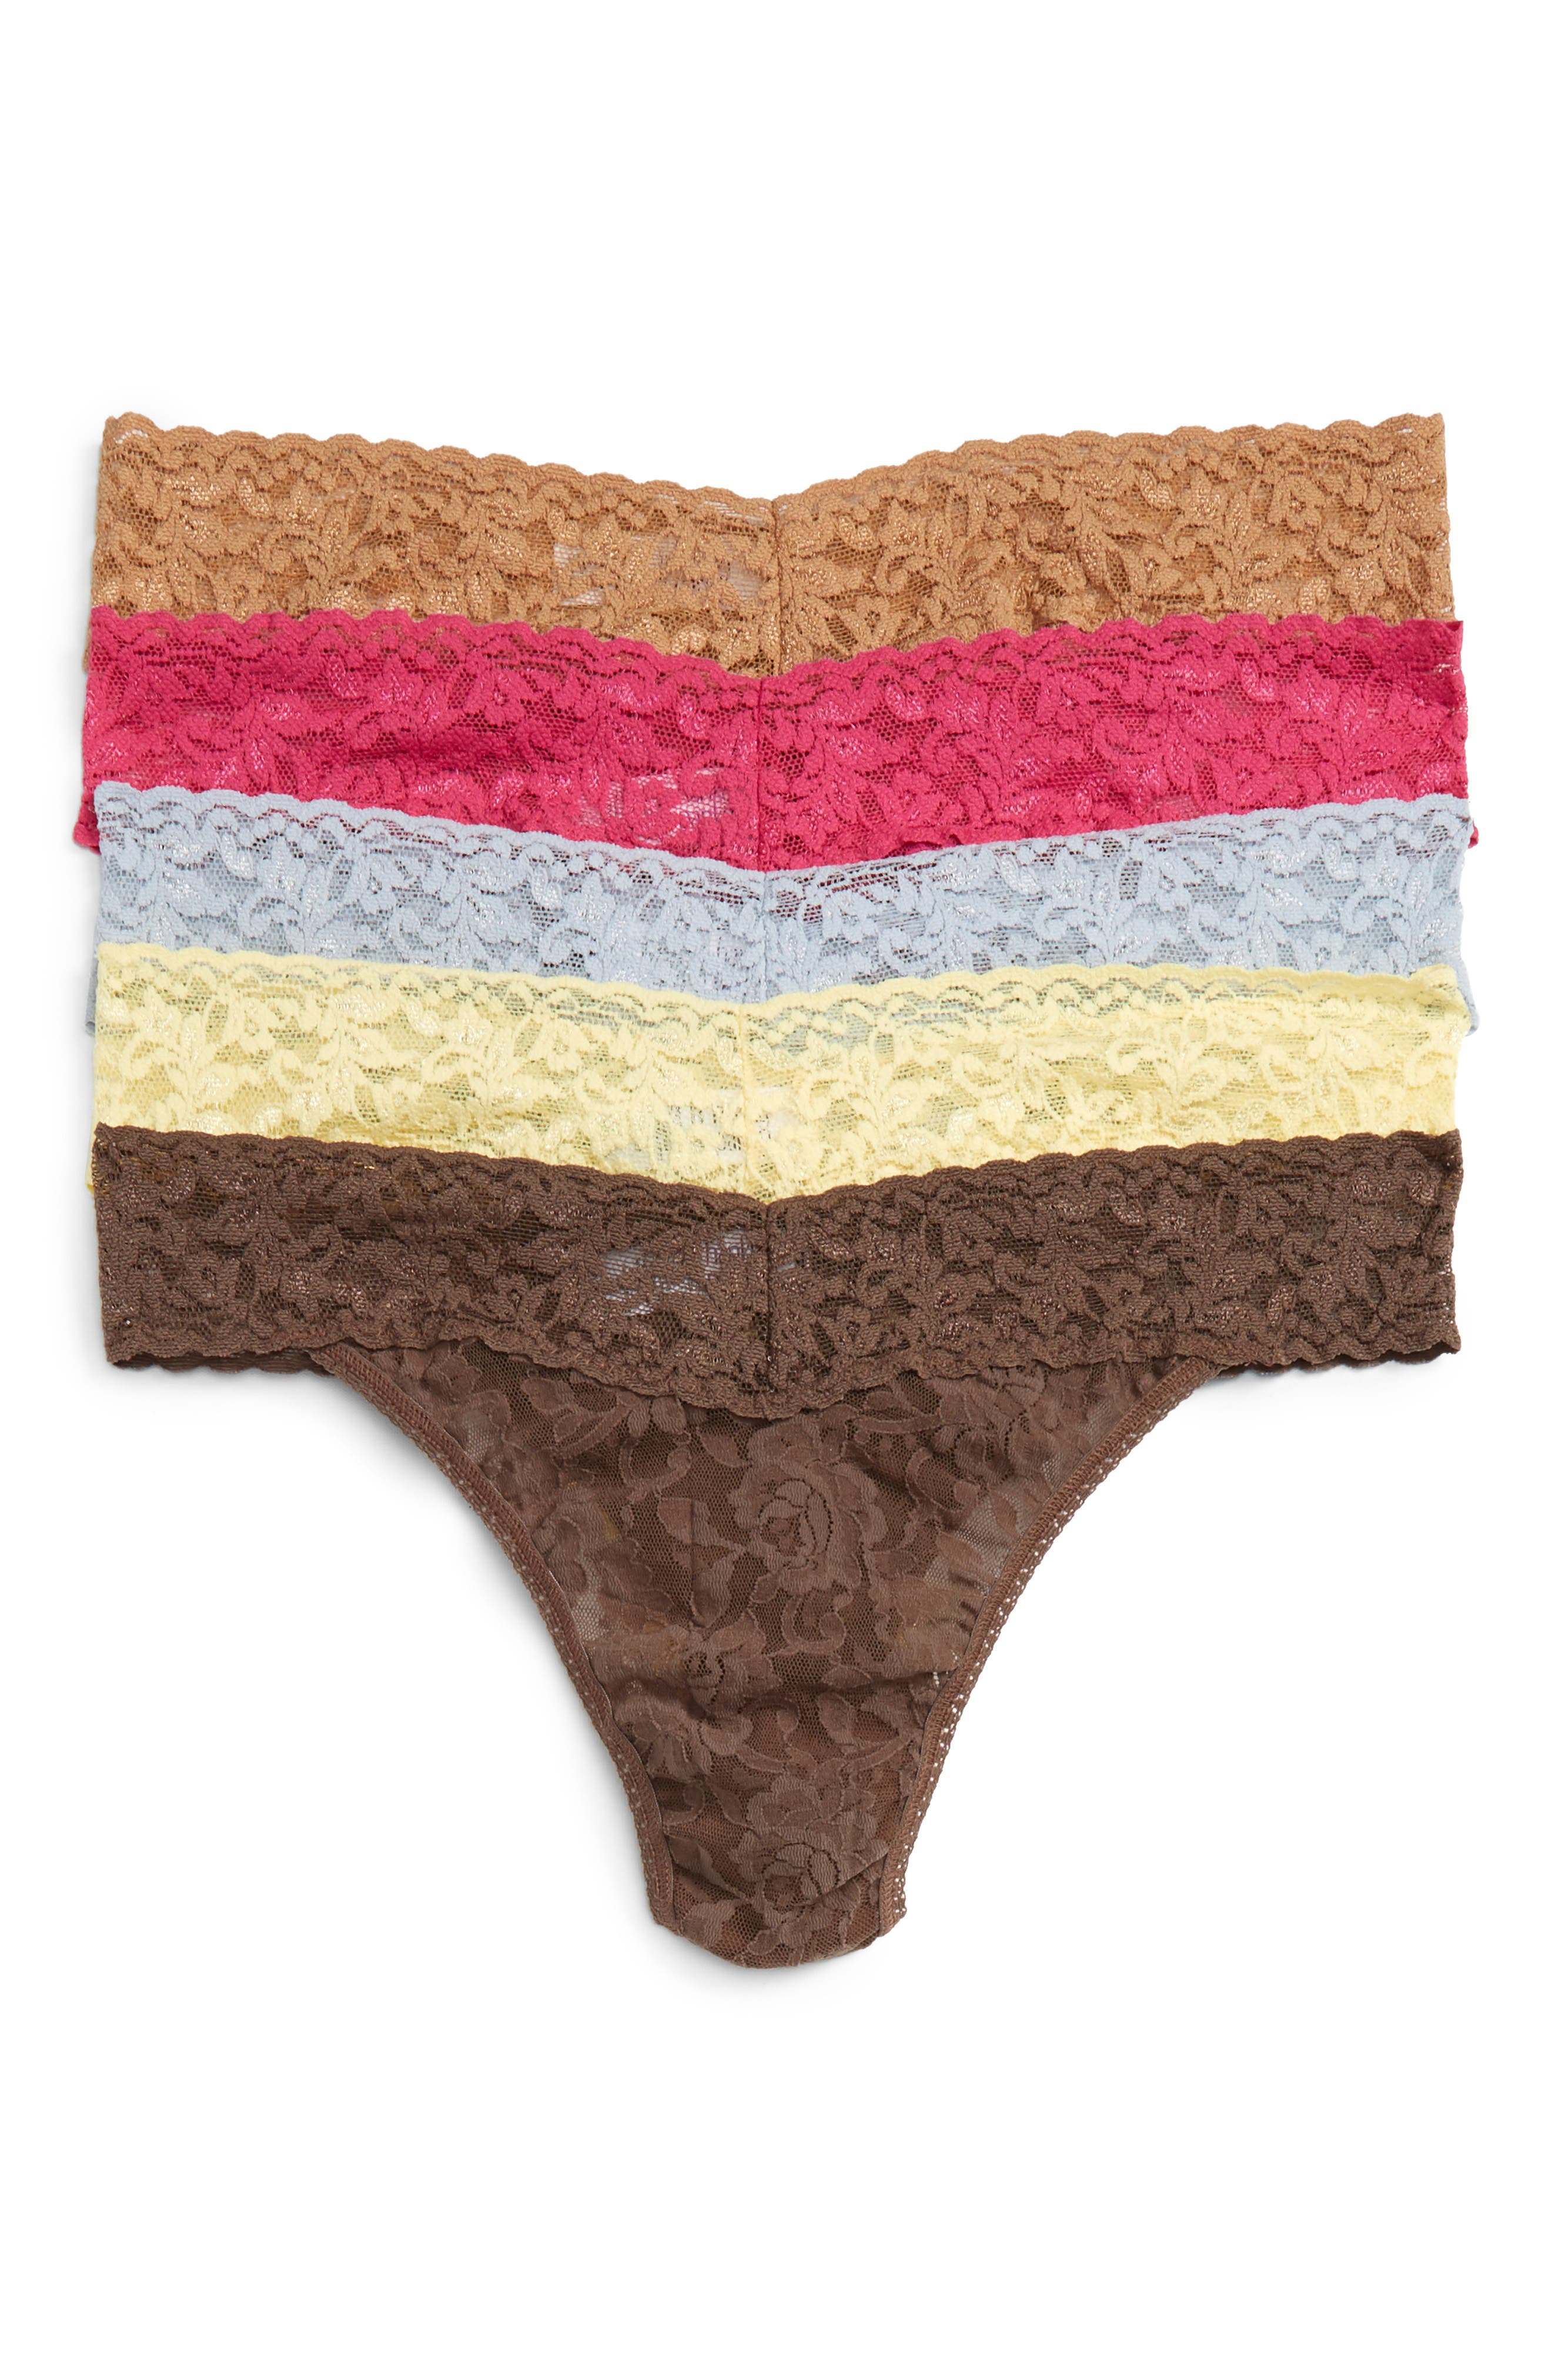 Alternate Image 1 Selected - Hanky Panky 5-Pack Original Rise Thong